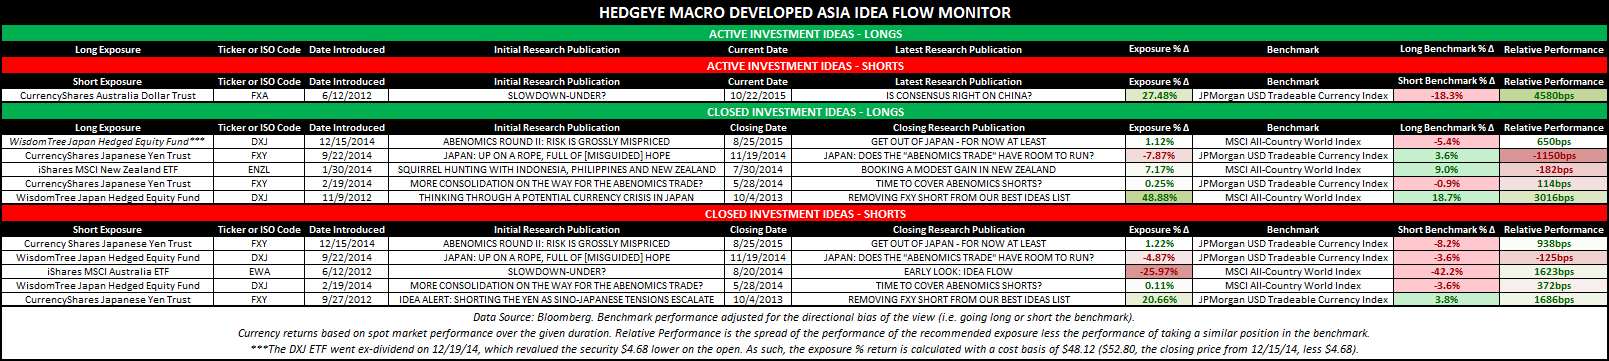 DM Asia/Emerging Markets Investment Strategy Update - DM Asia Idea Flow Monitor